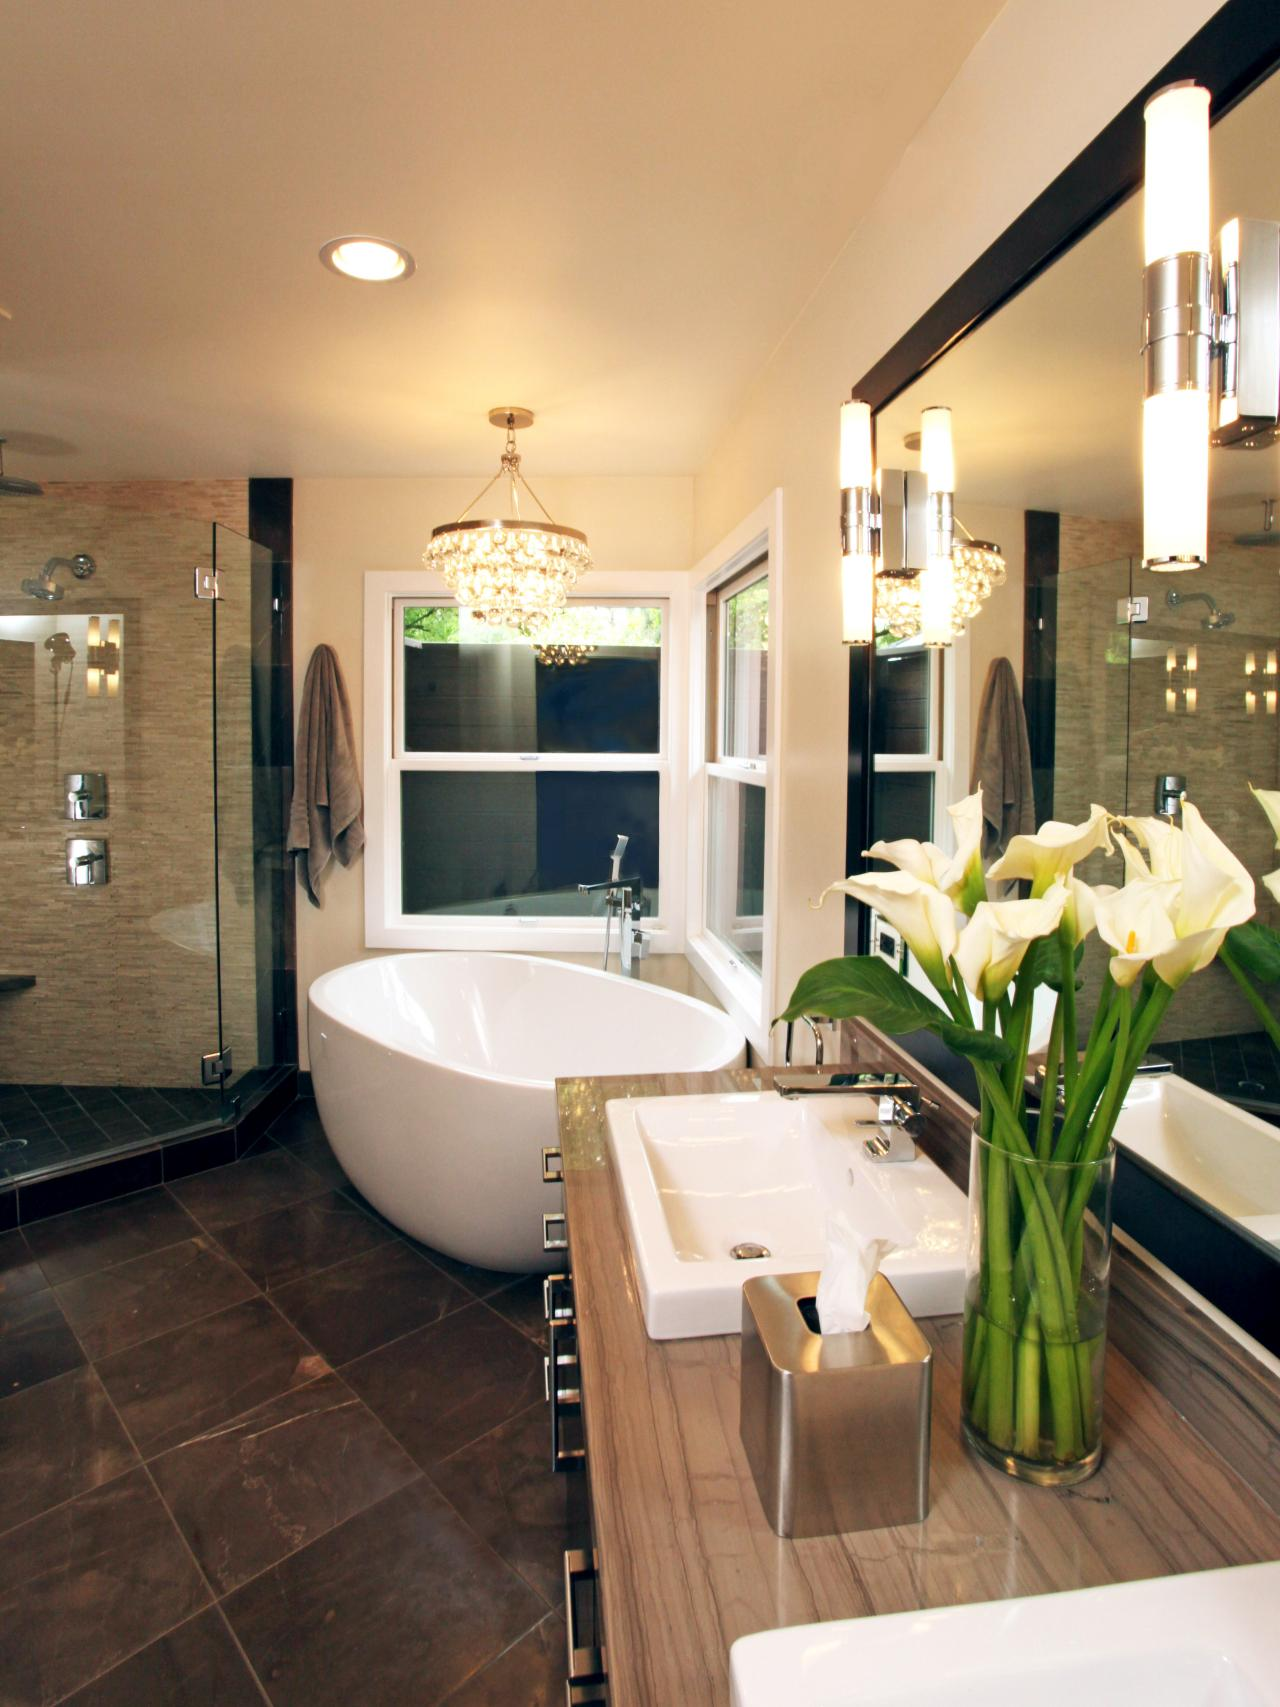 European Bathroom Design Ideas: HGTV Pictures & Tips | HGTV